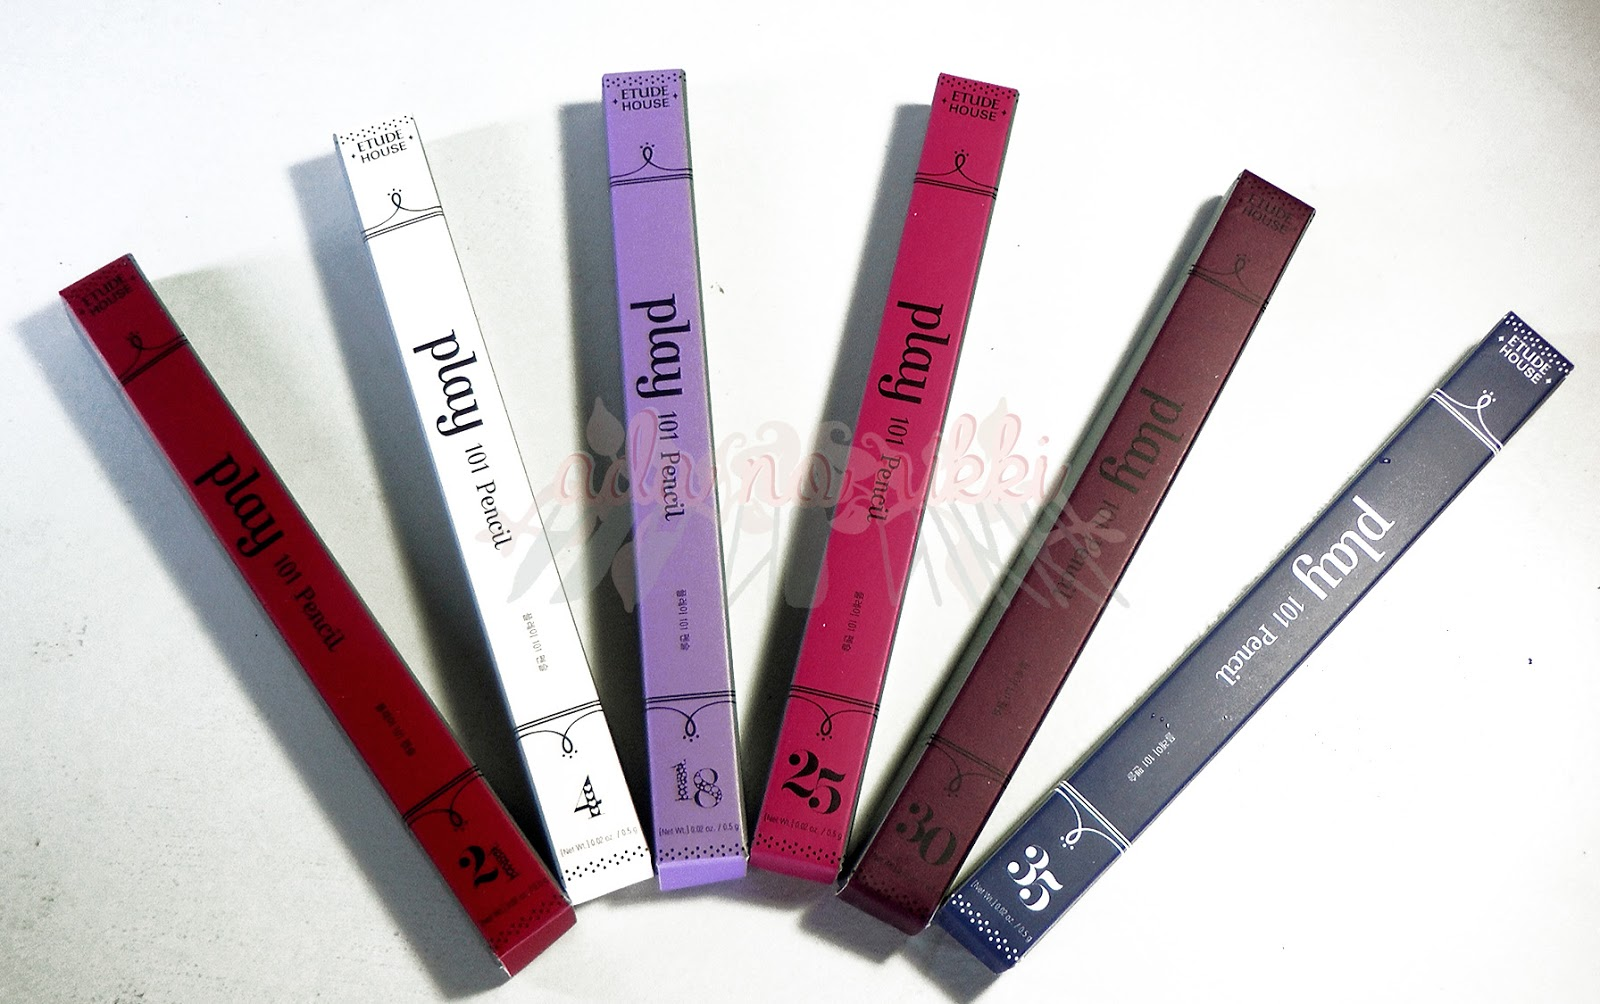 Etude House Play 101 Pencils in # 4, 18, 21, 25, 30, 35